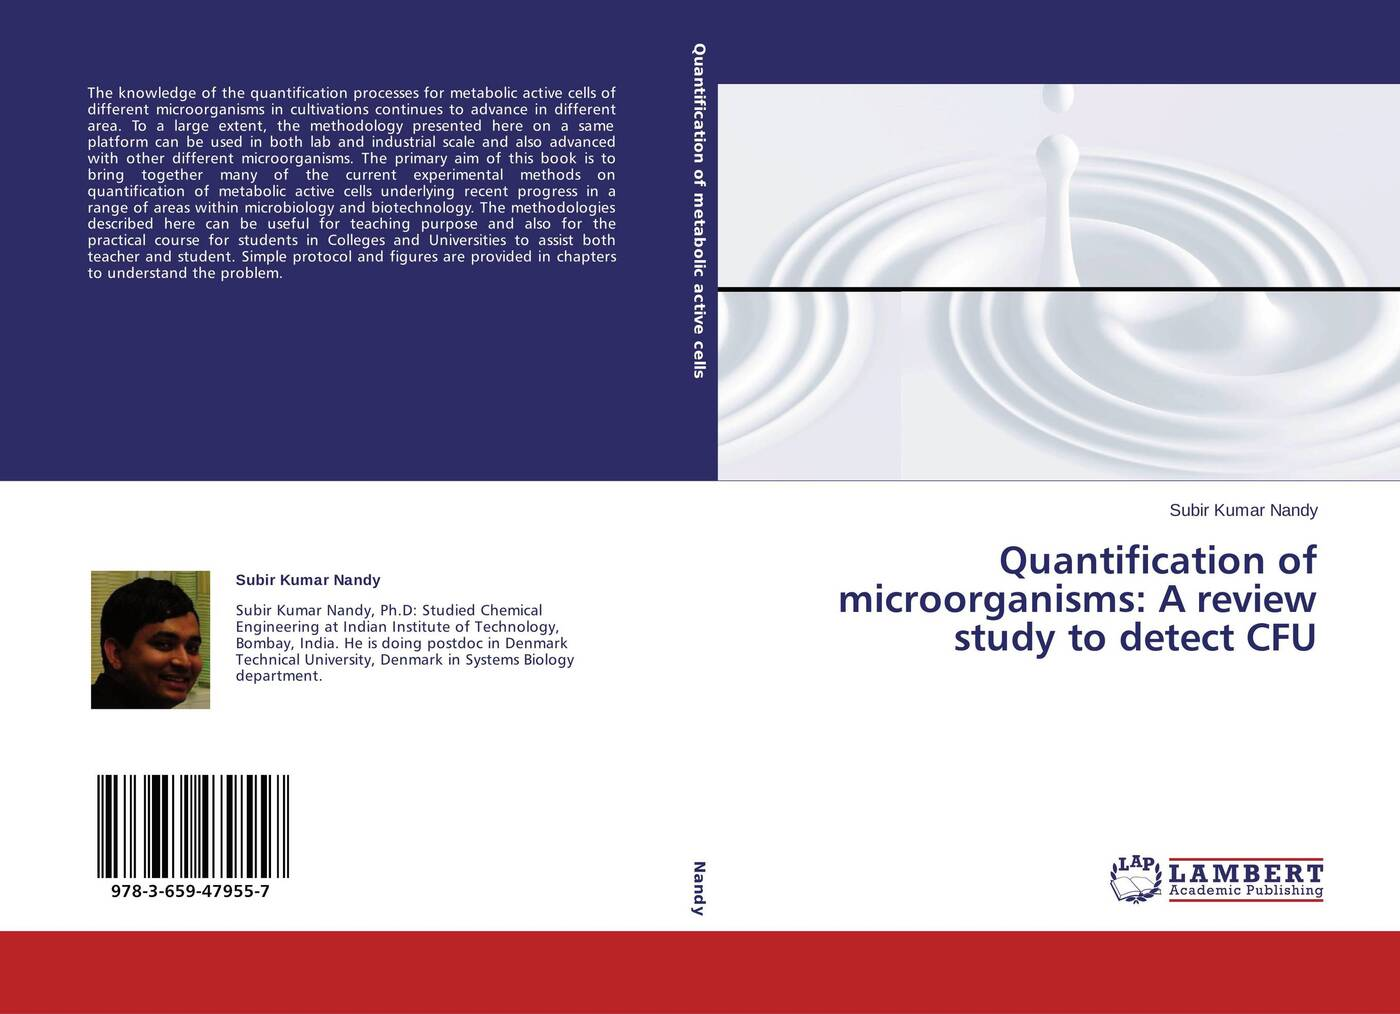 Subir Kumar Nandy Quantification of microorganisms: A review study to detect CFU modeling forest stands structures and biomass quantification